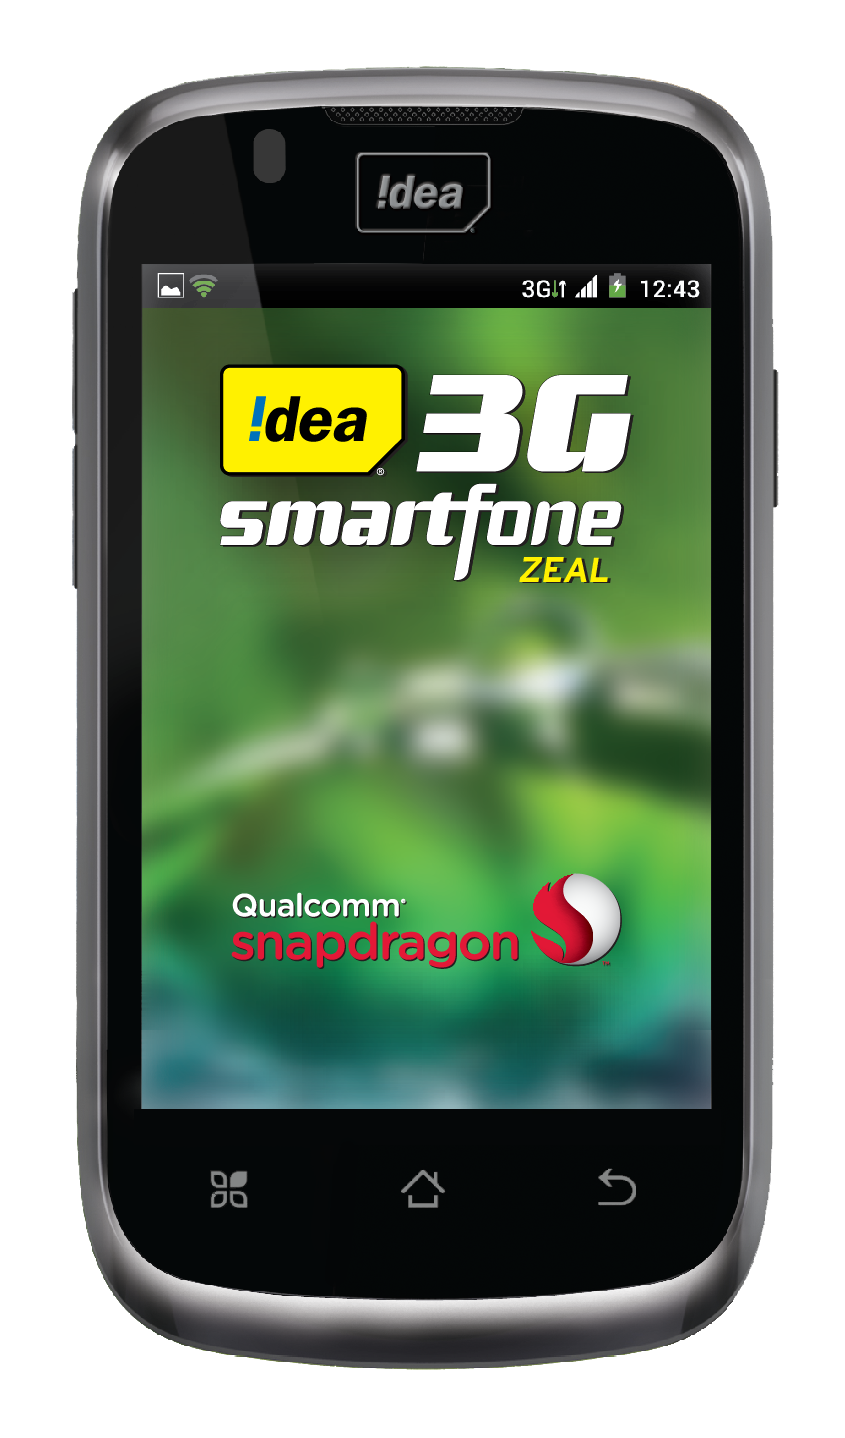 Idea Zeal 3g Smartphone Available At Rs 5390 Telecom